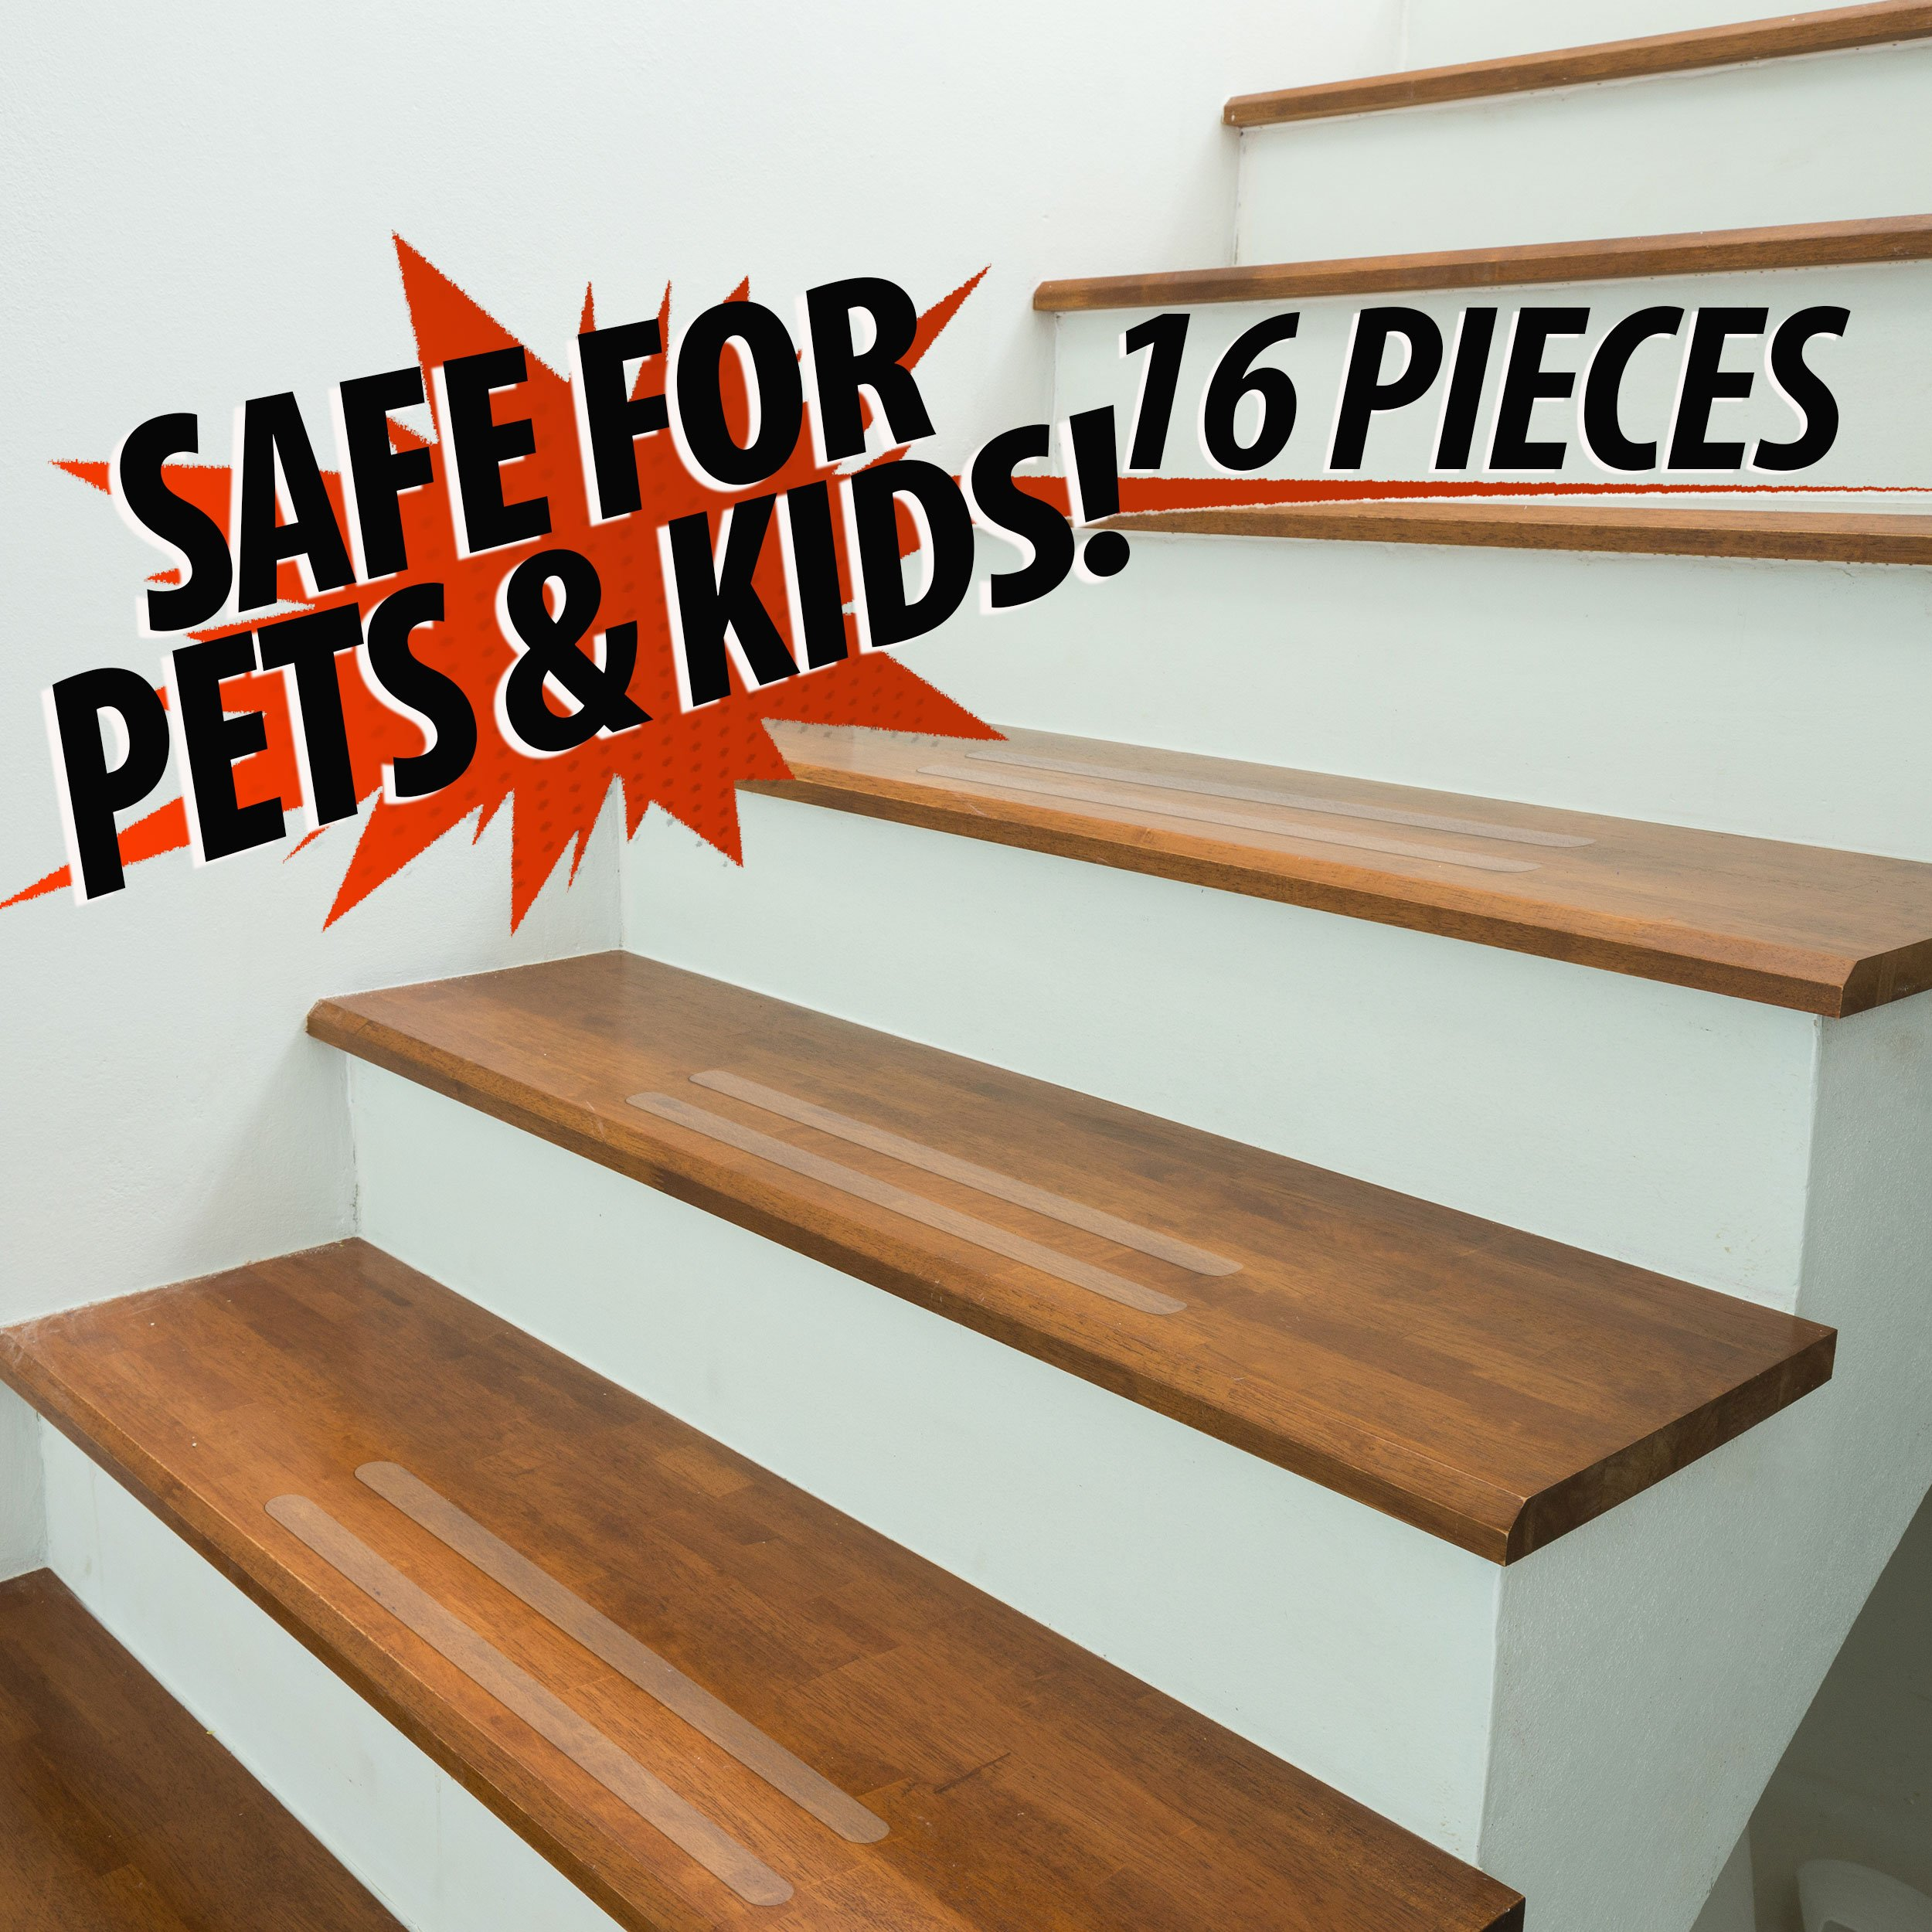 Details About Red Cat Clear Floor, Bath, Stair Non Slip Grip  Strips/treads Indoor/Outdoor 16